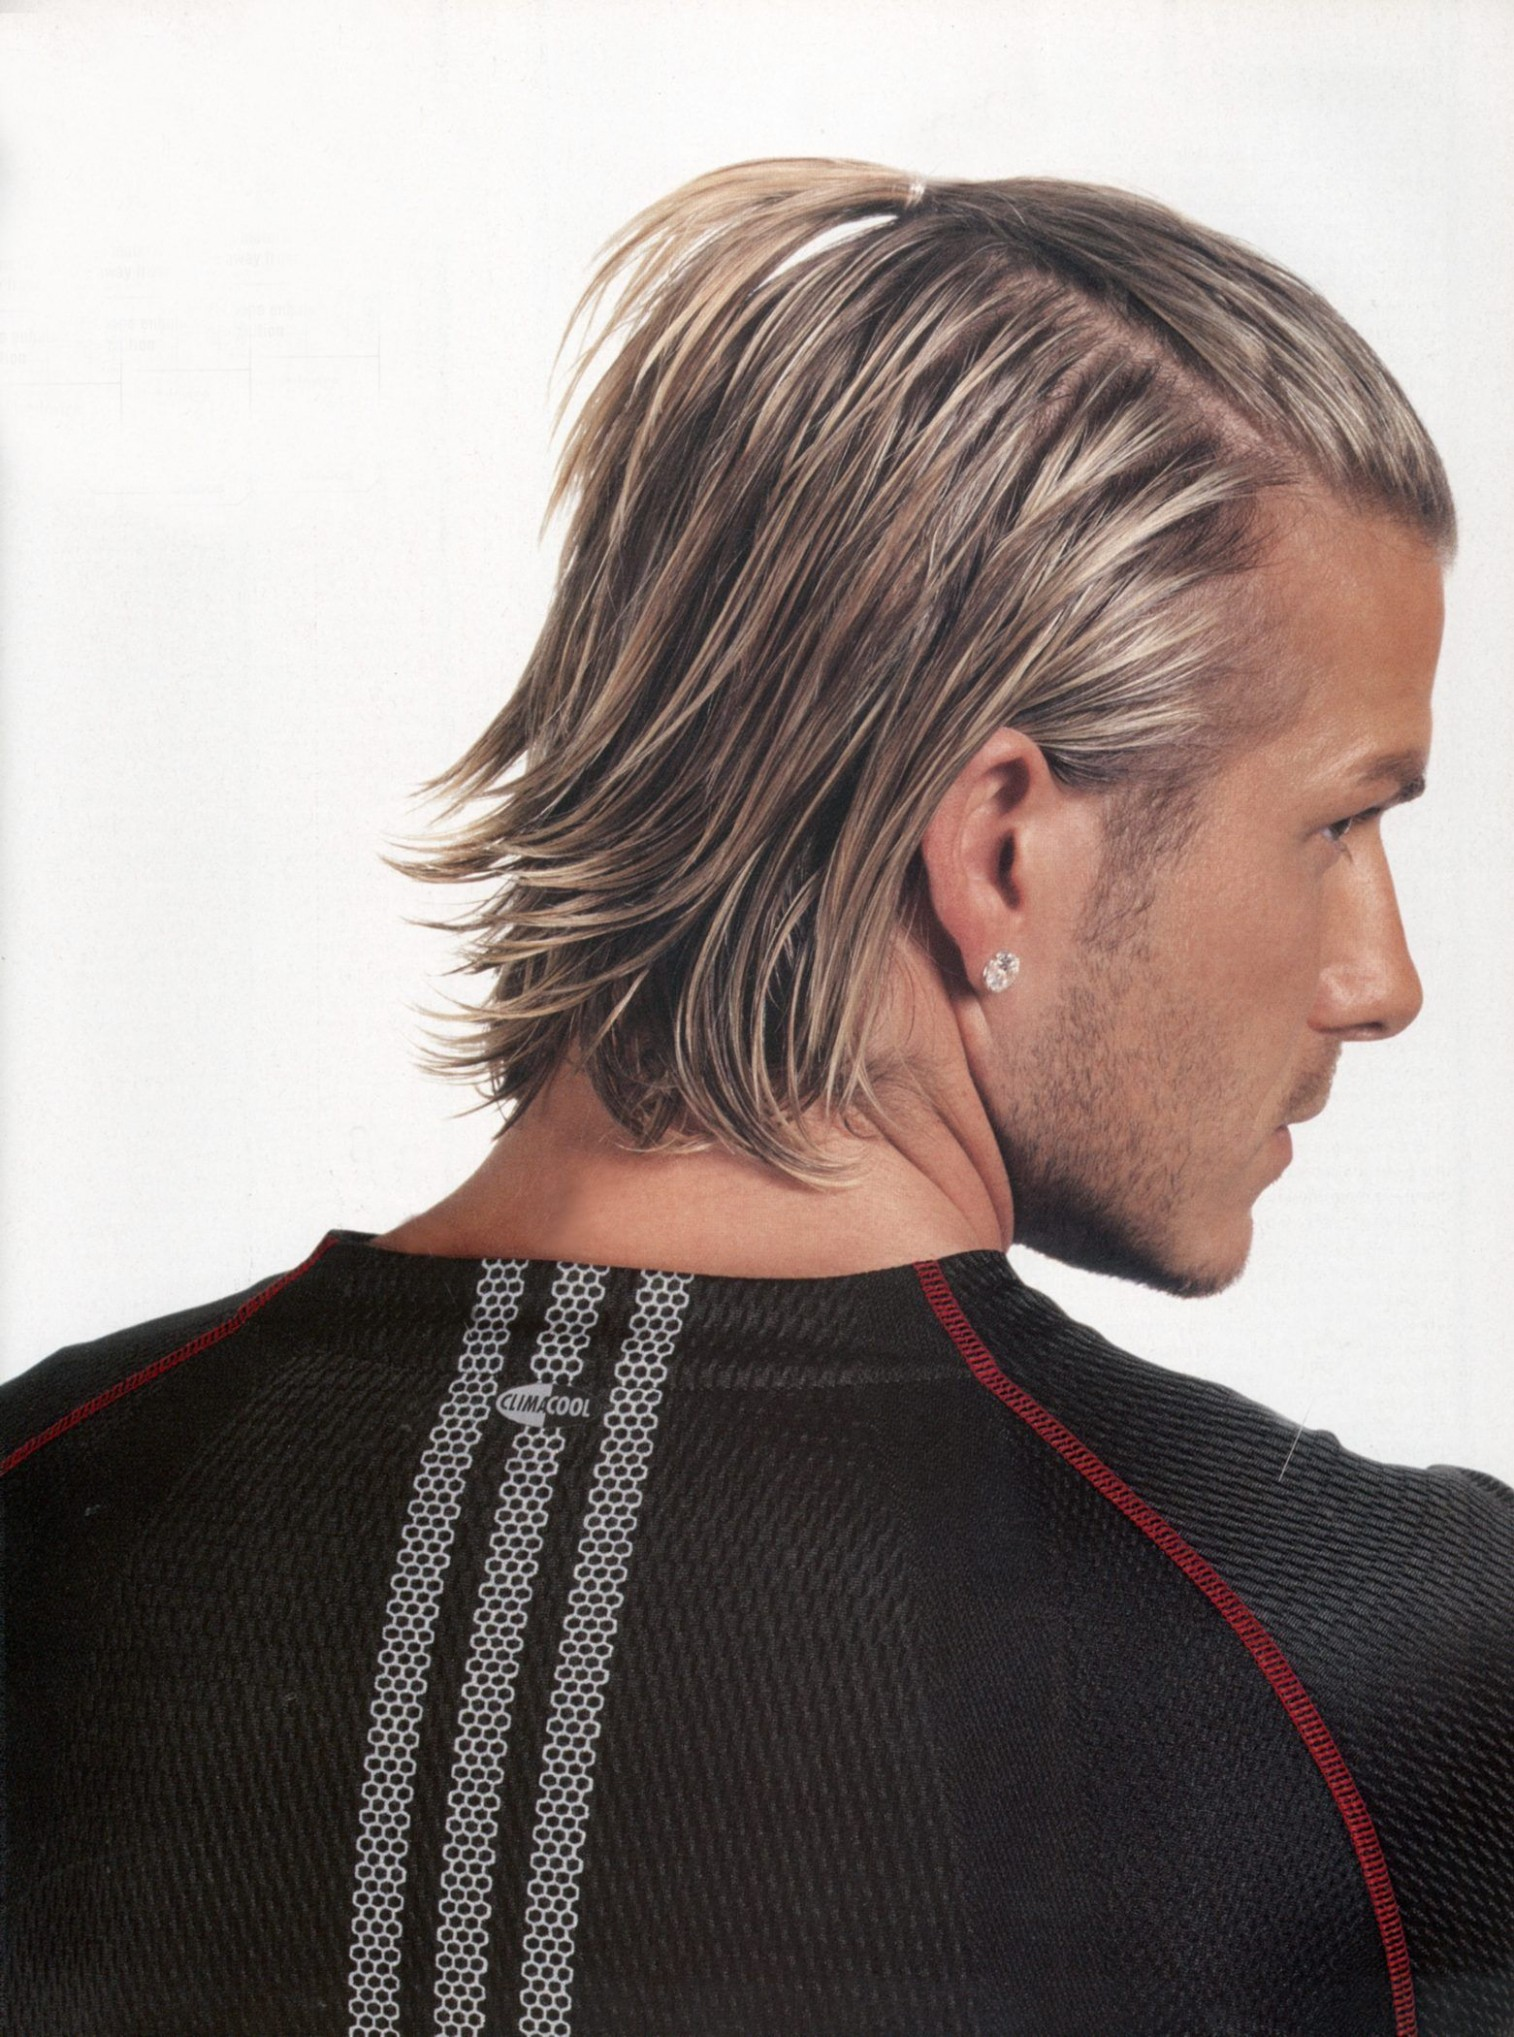 Becks Hair Color Is Really Cool He Can Do Any Shade